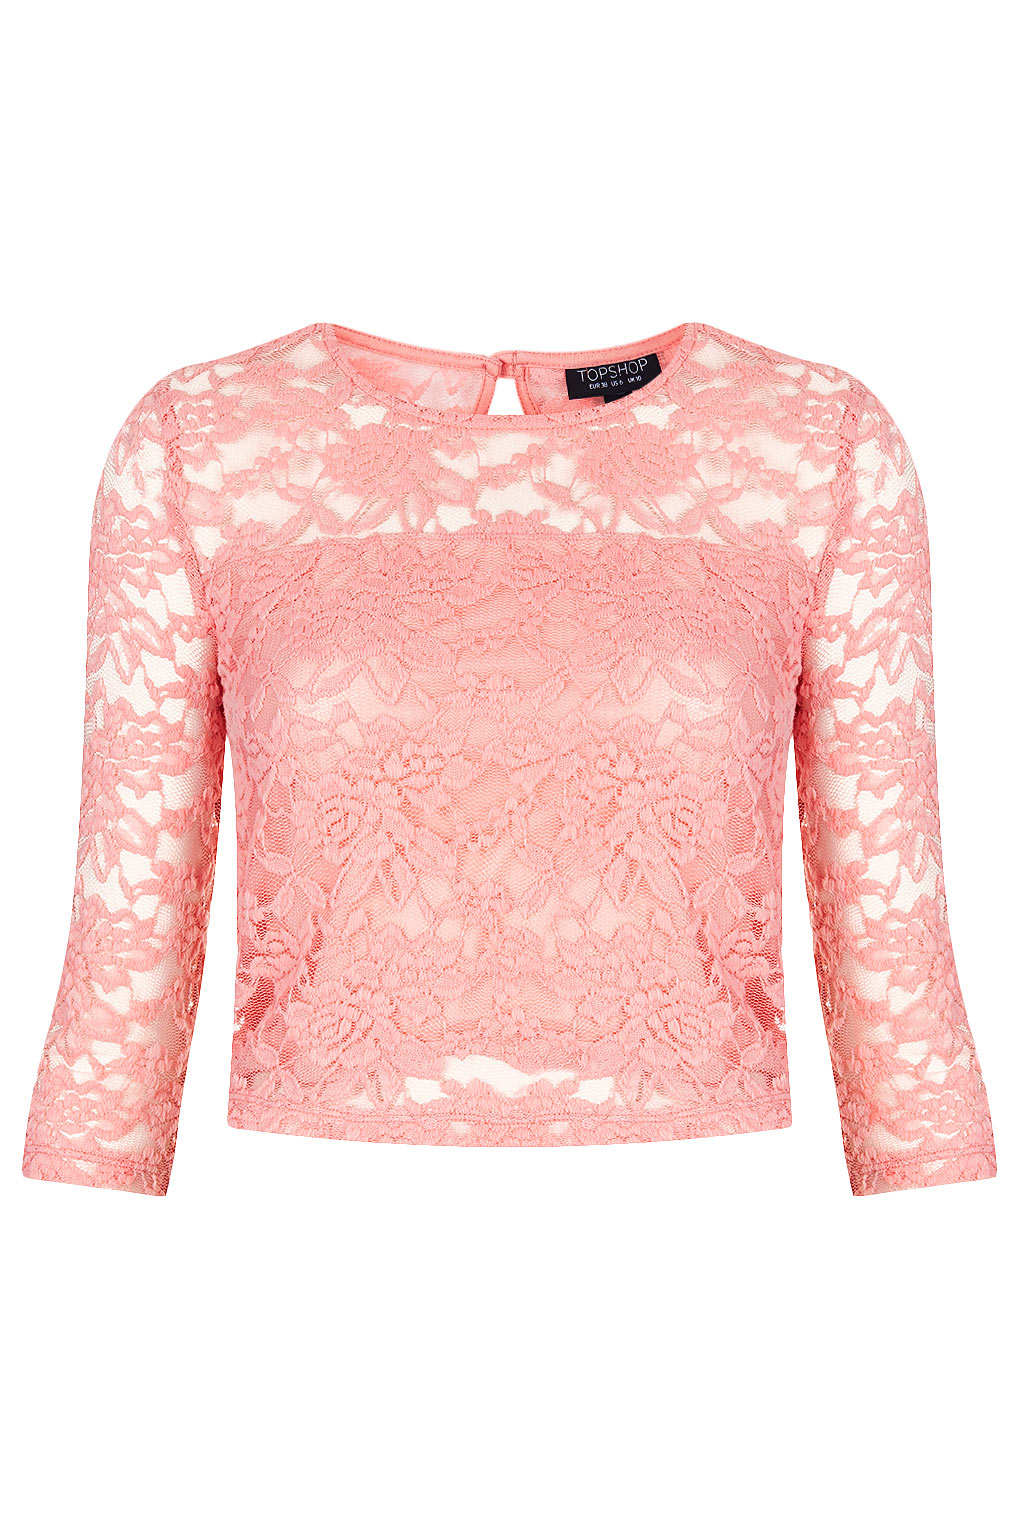 Pink Lace Top River Island